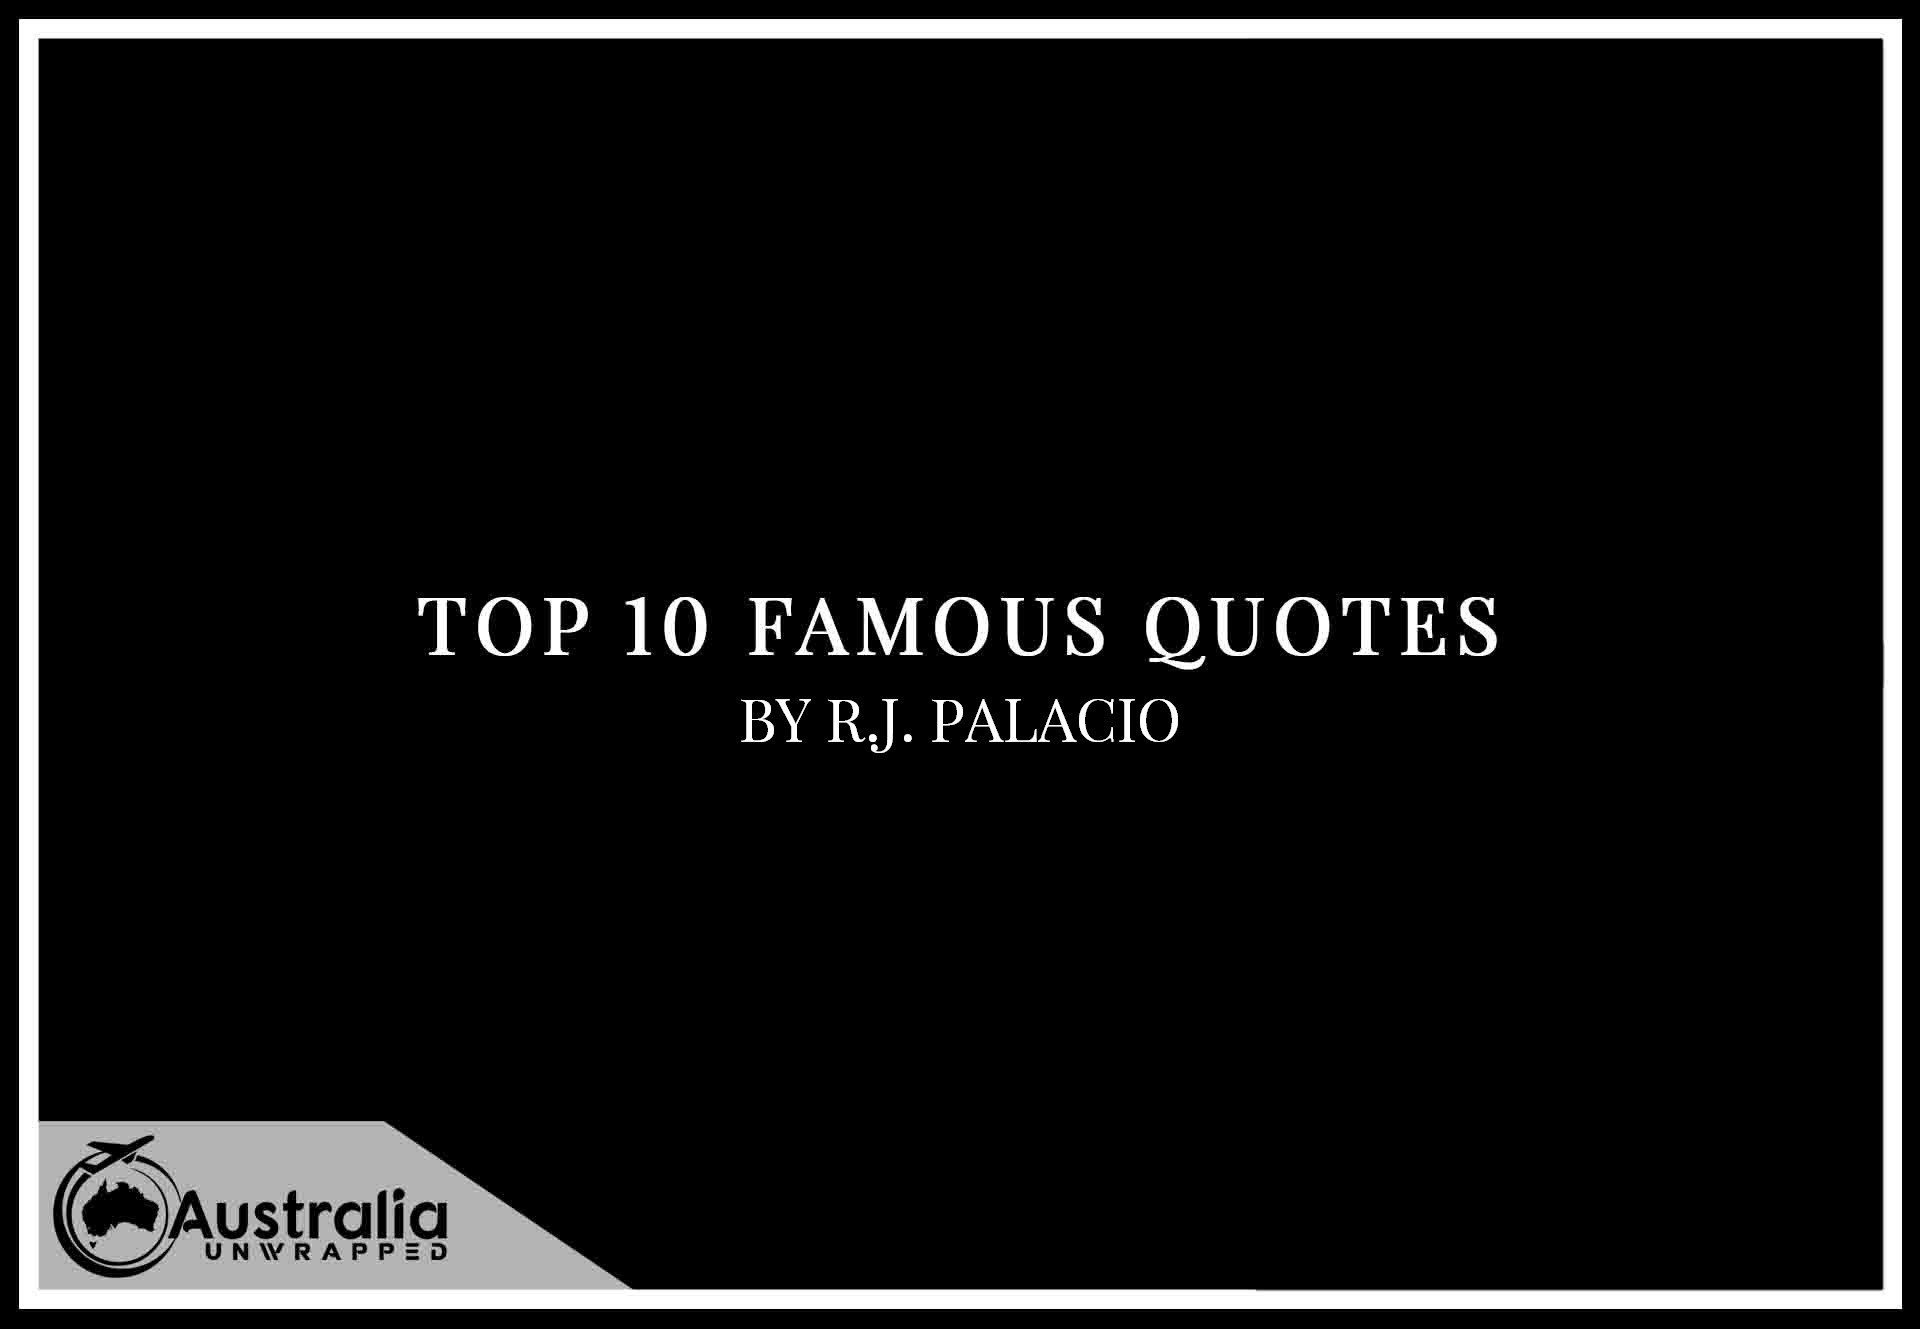 Top 10 Famous Quotes by Author R.J. Palacio